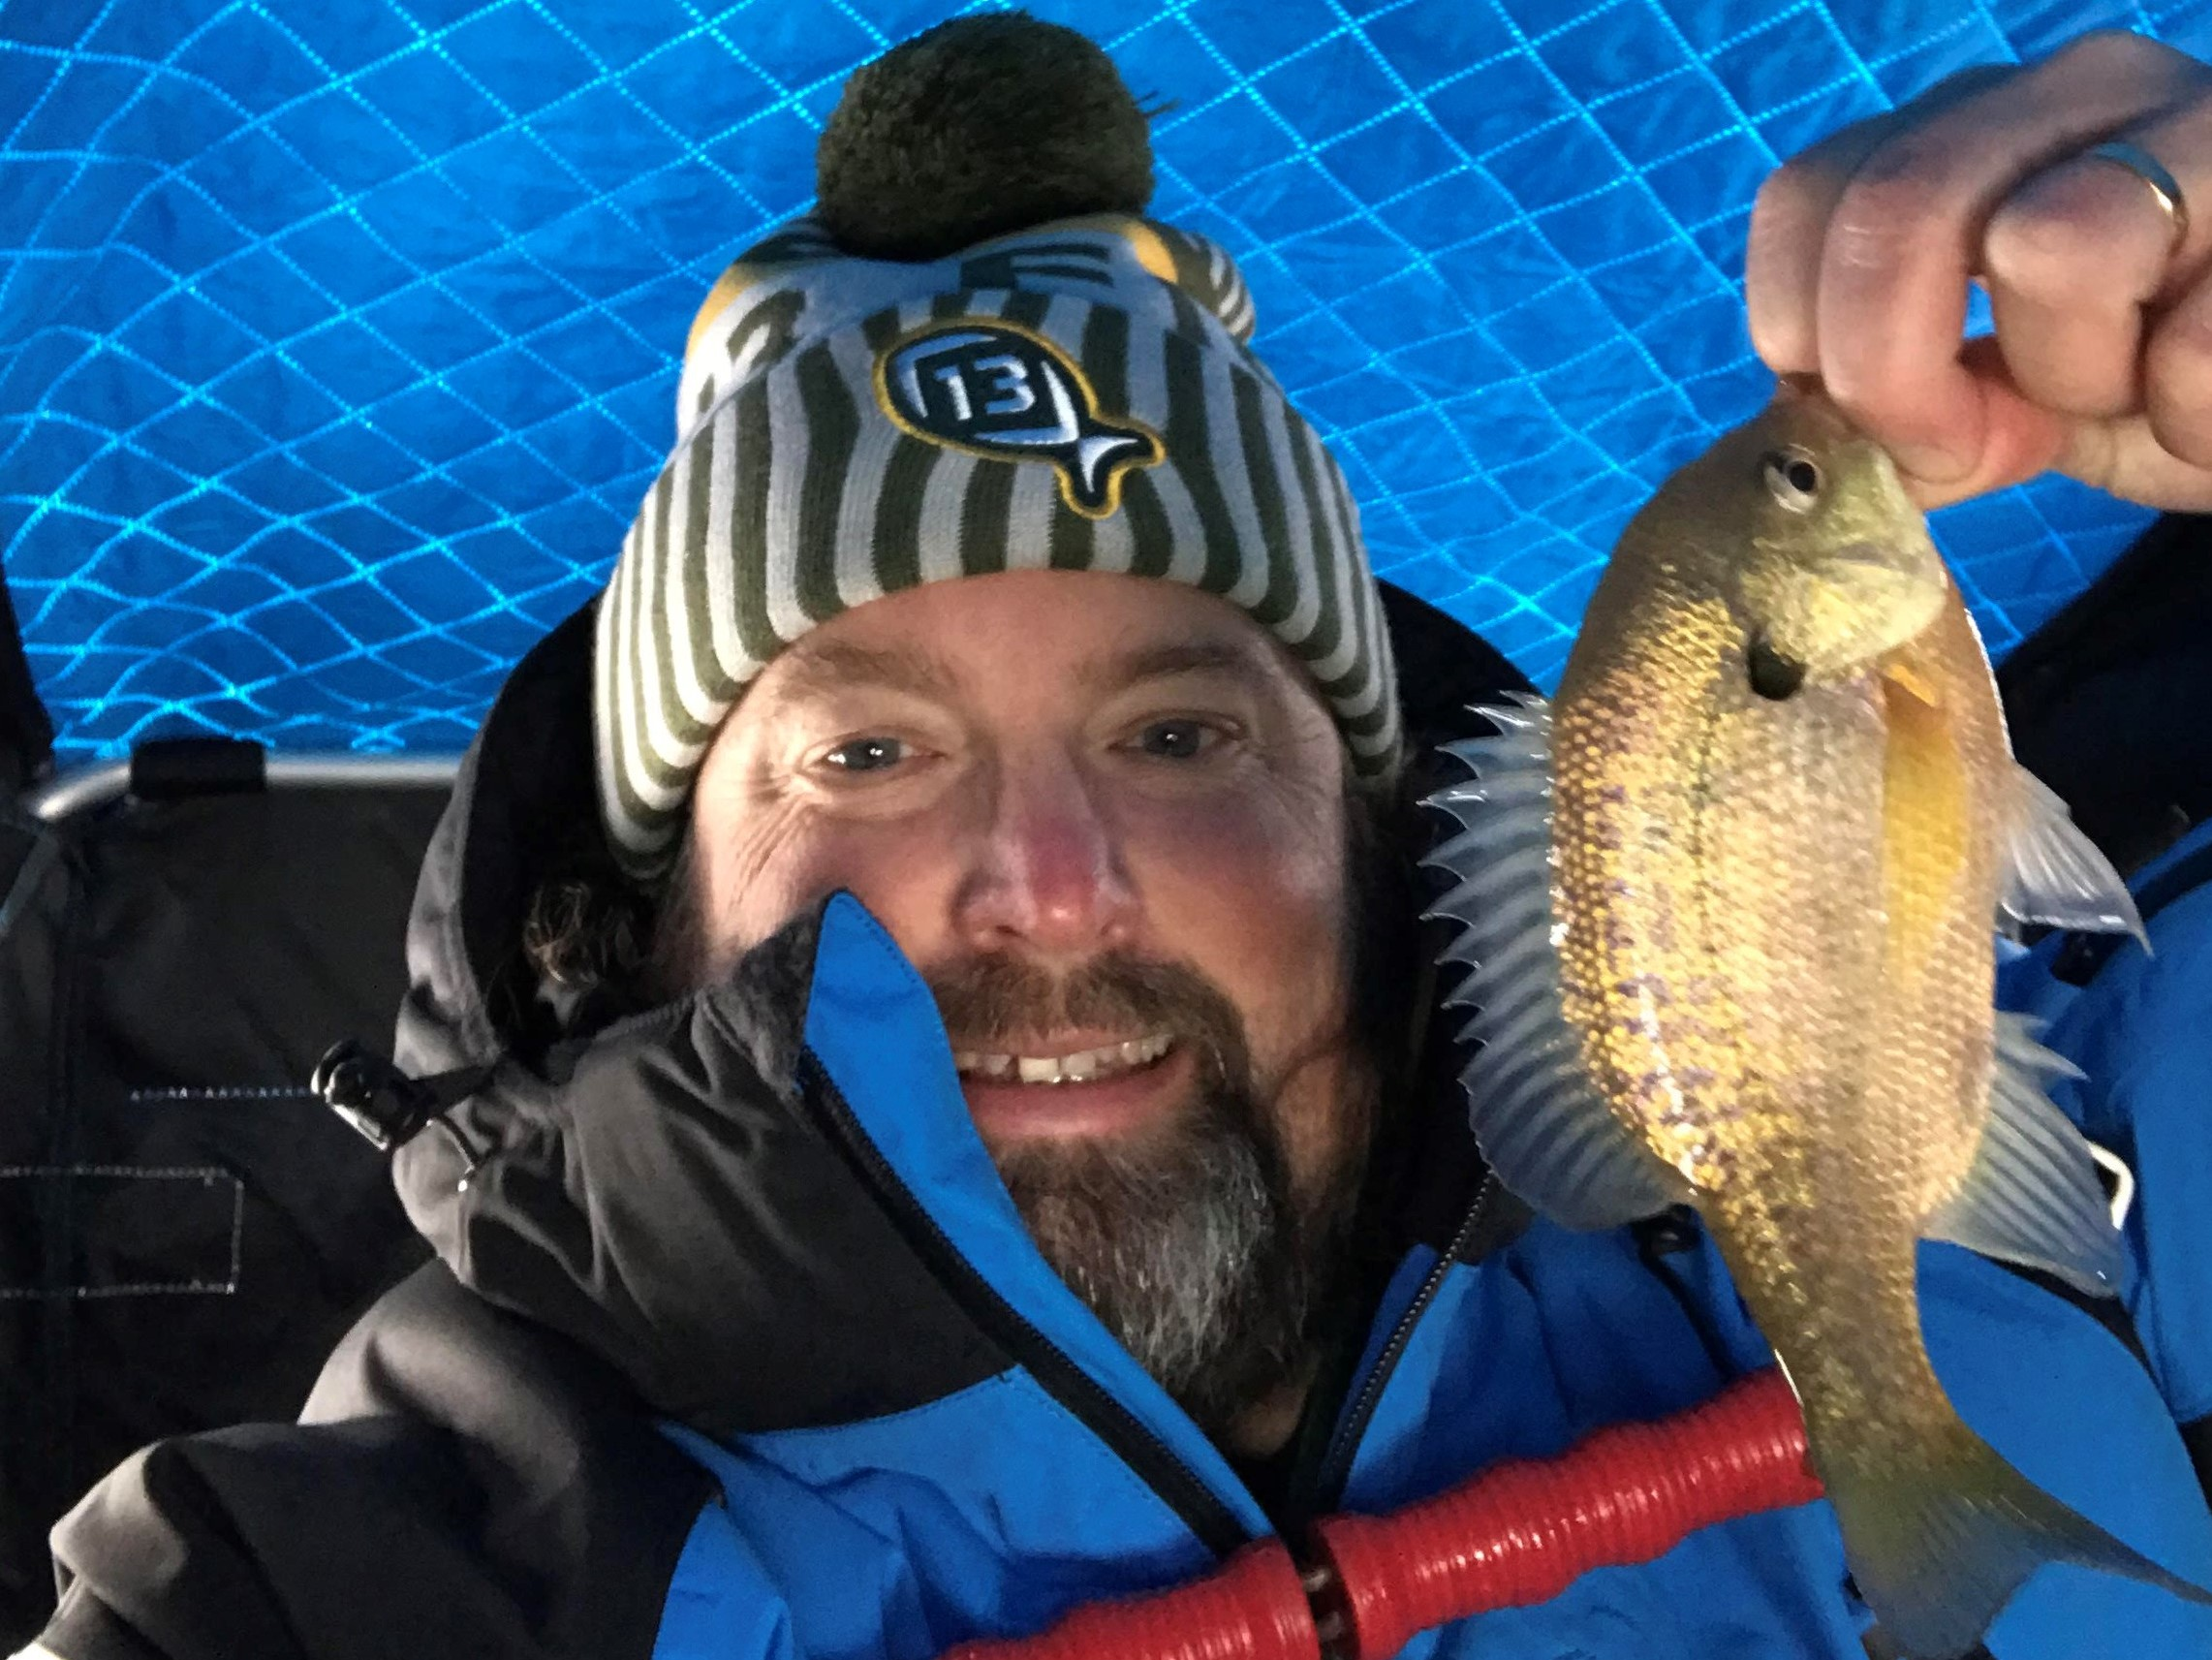 """Other than Ken """"Husker"""" O'Malley's damn hat, this is fairly representative of the last week in area fishing. Provided photo"""